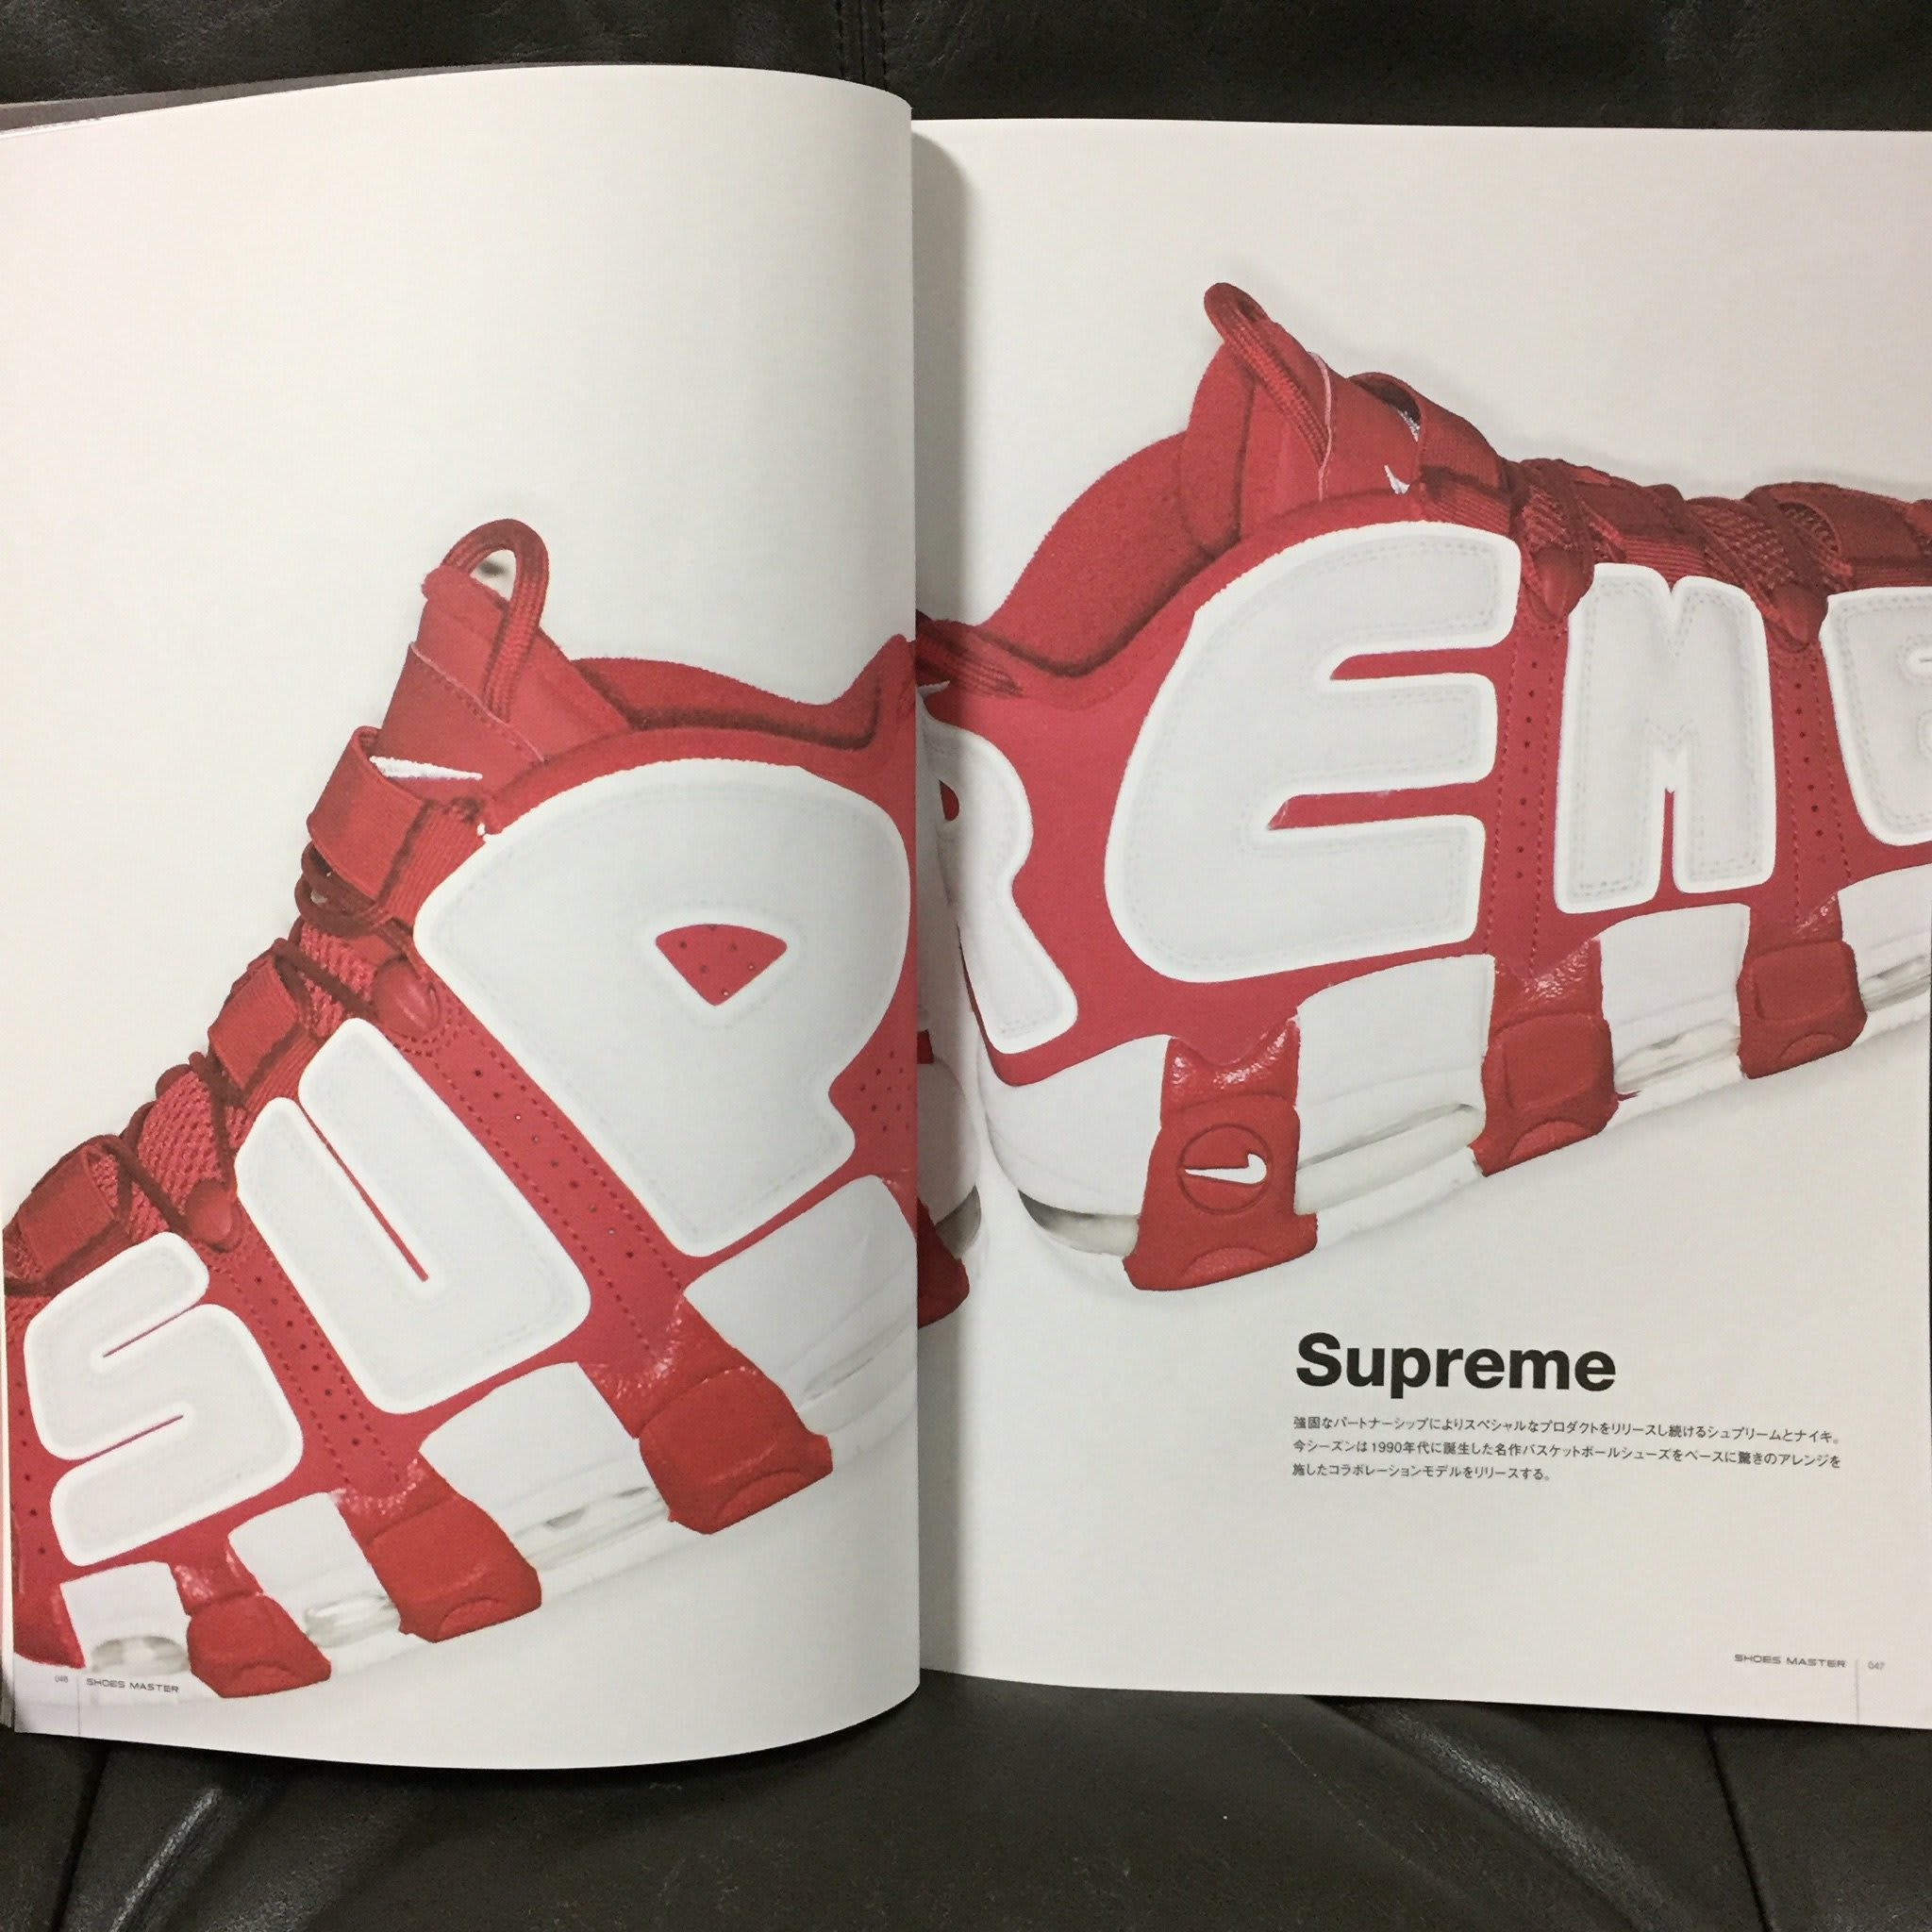 Supreme x Nike Air More Uptempo Shoes Master (2)